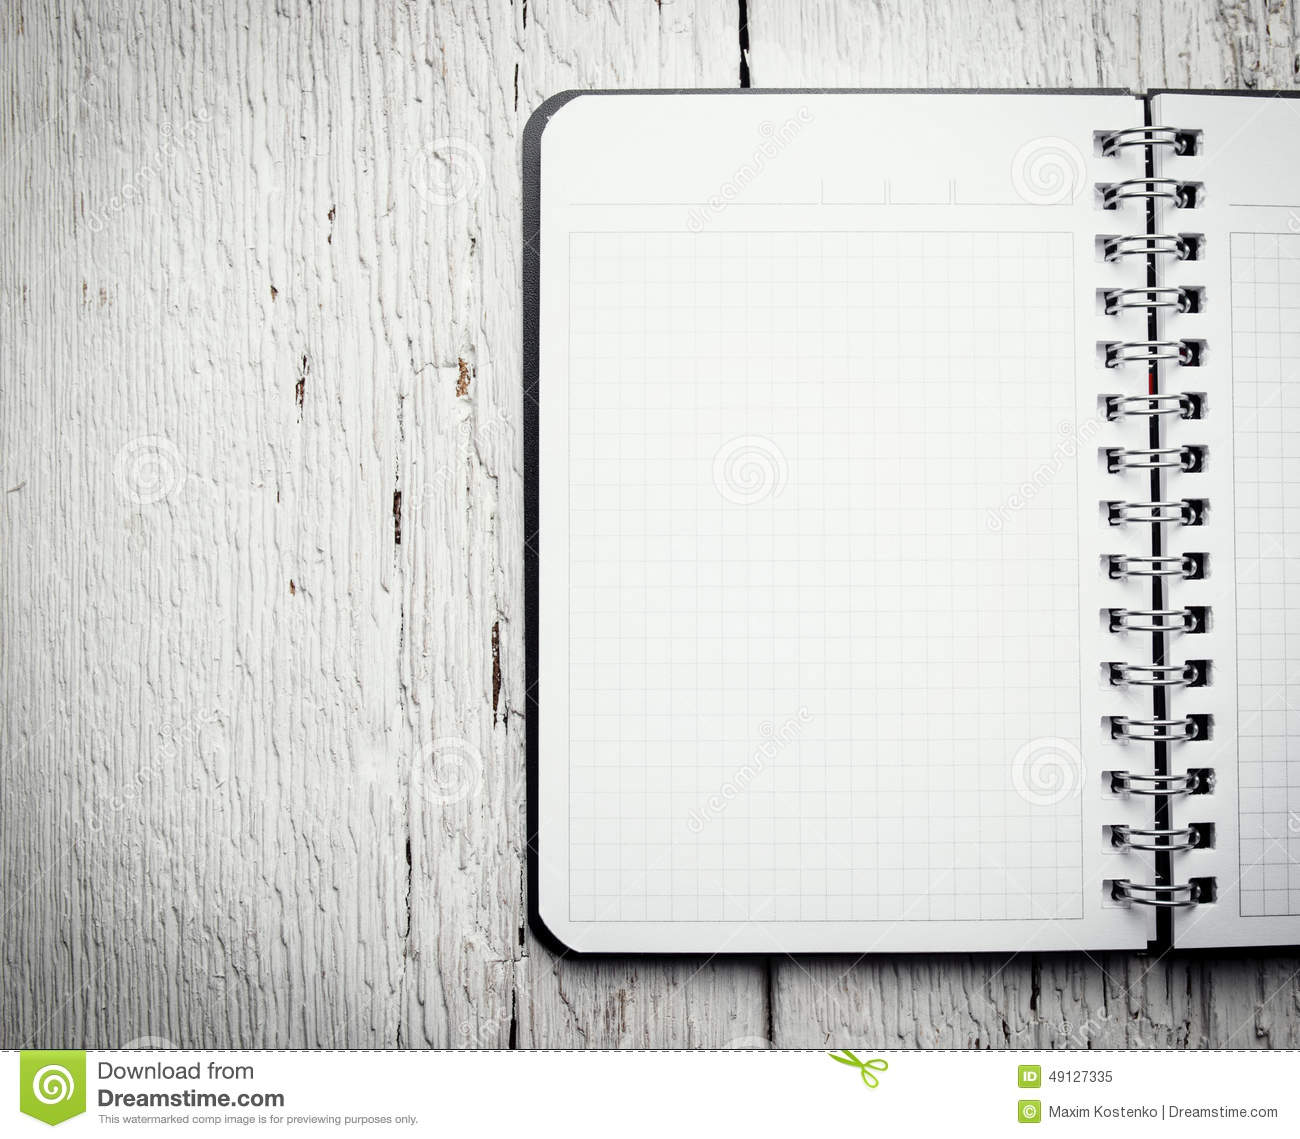 Open Blank Notepad With Empty White Pages Stock Image - Image of dark, color: 49127335